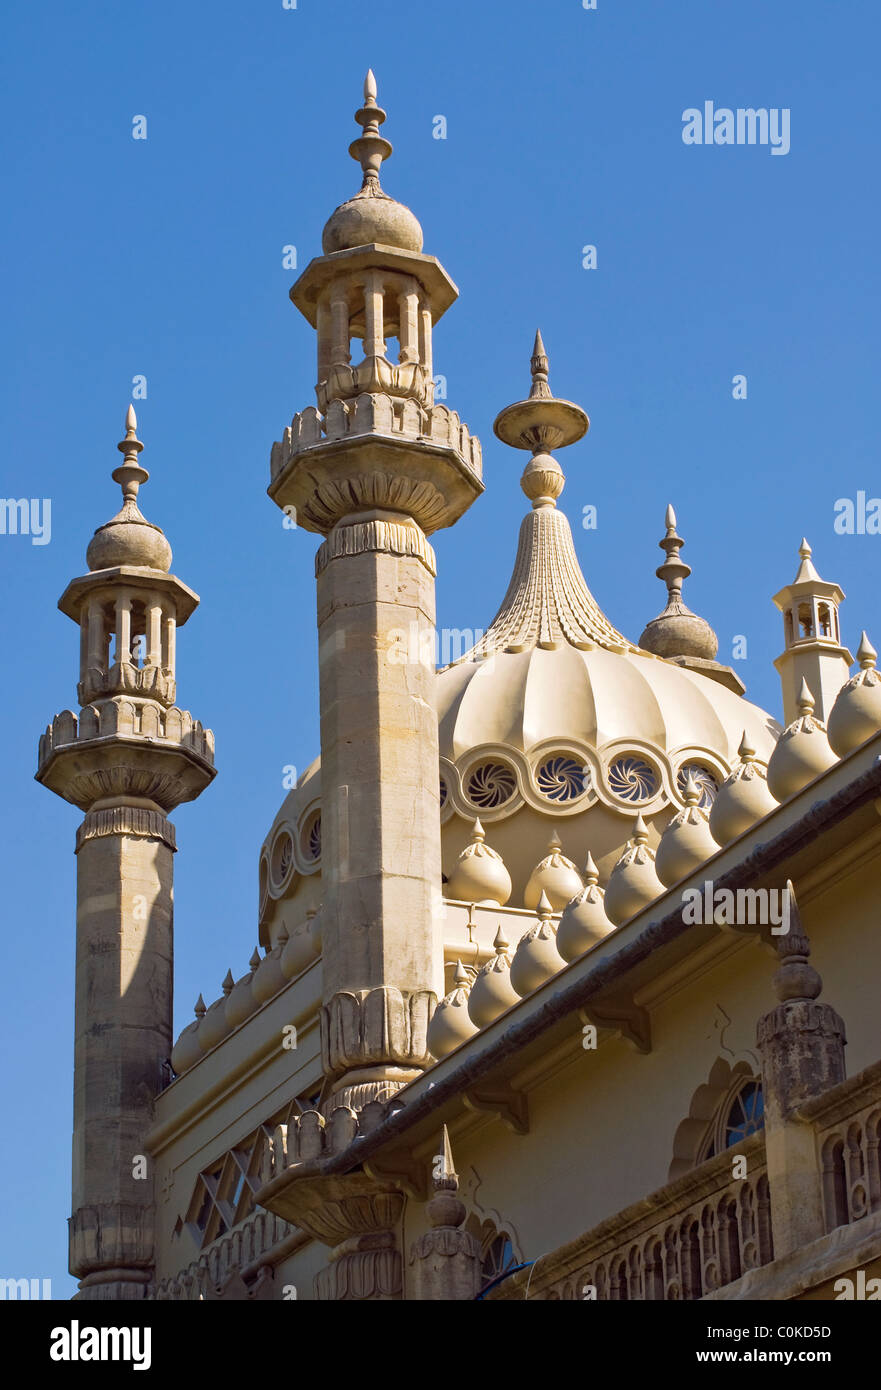 Historical Royal Pavillion a at the popular coastal resort of Brighton in East Sussex, South England. - Stock Image